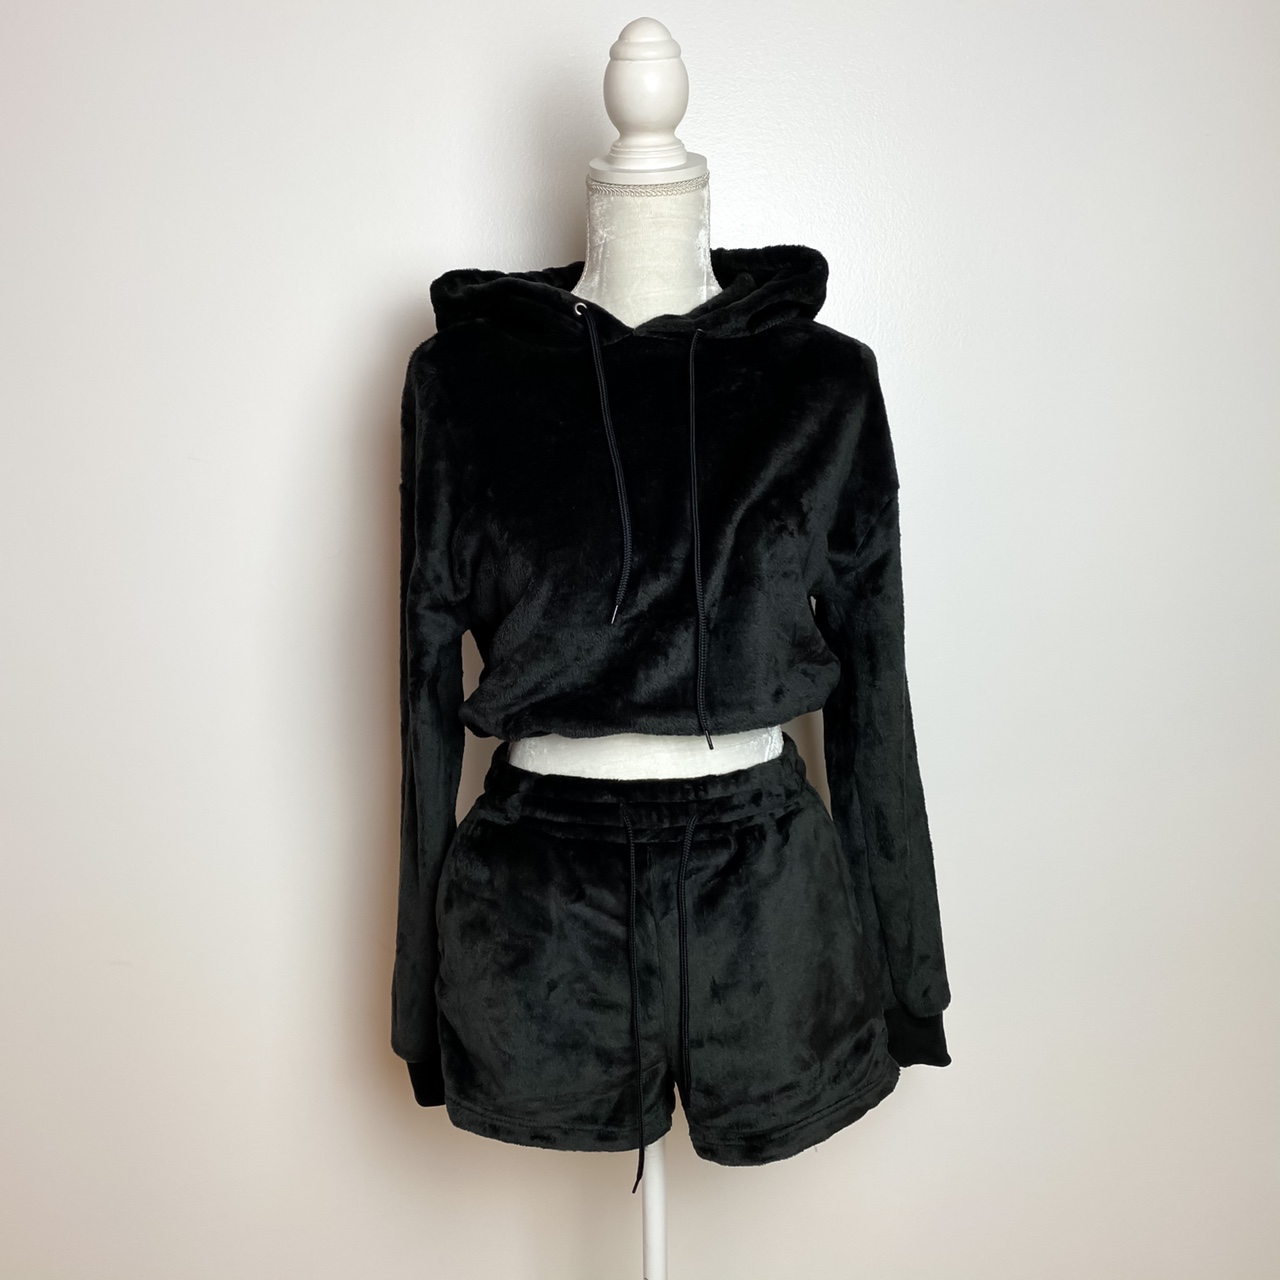 Product Image 1 - Stay cozy with this black